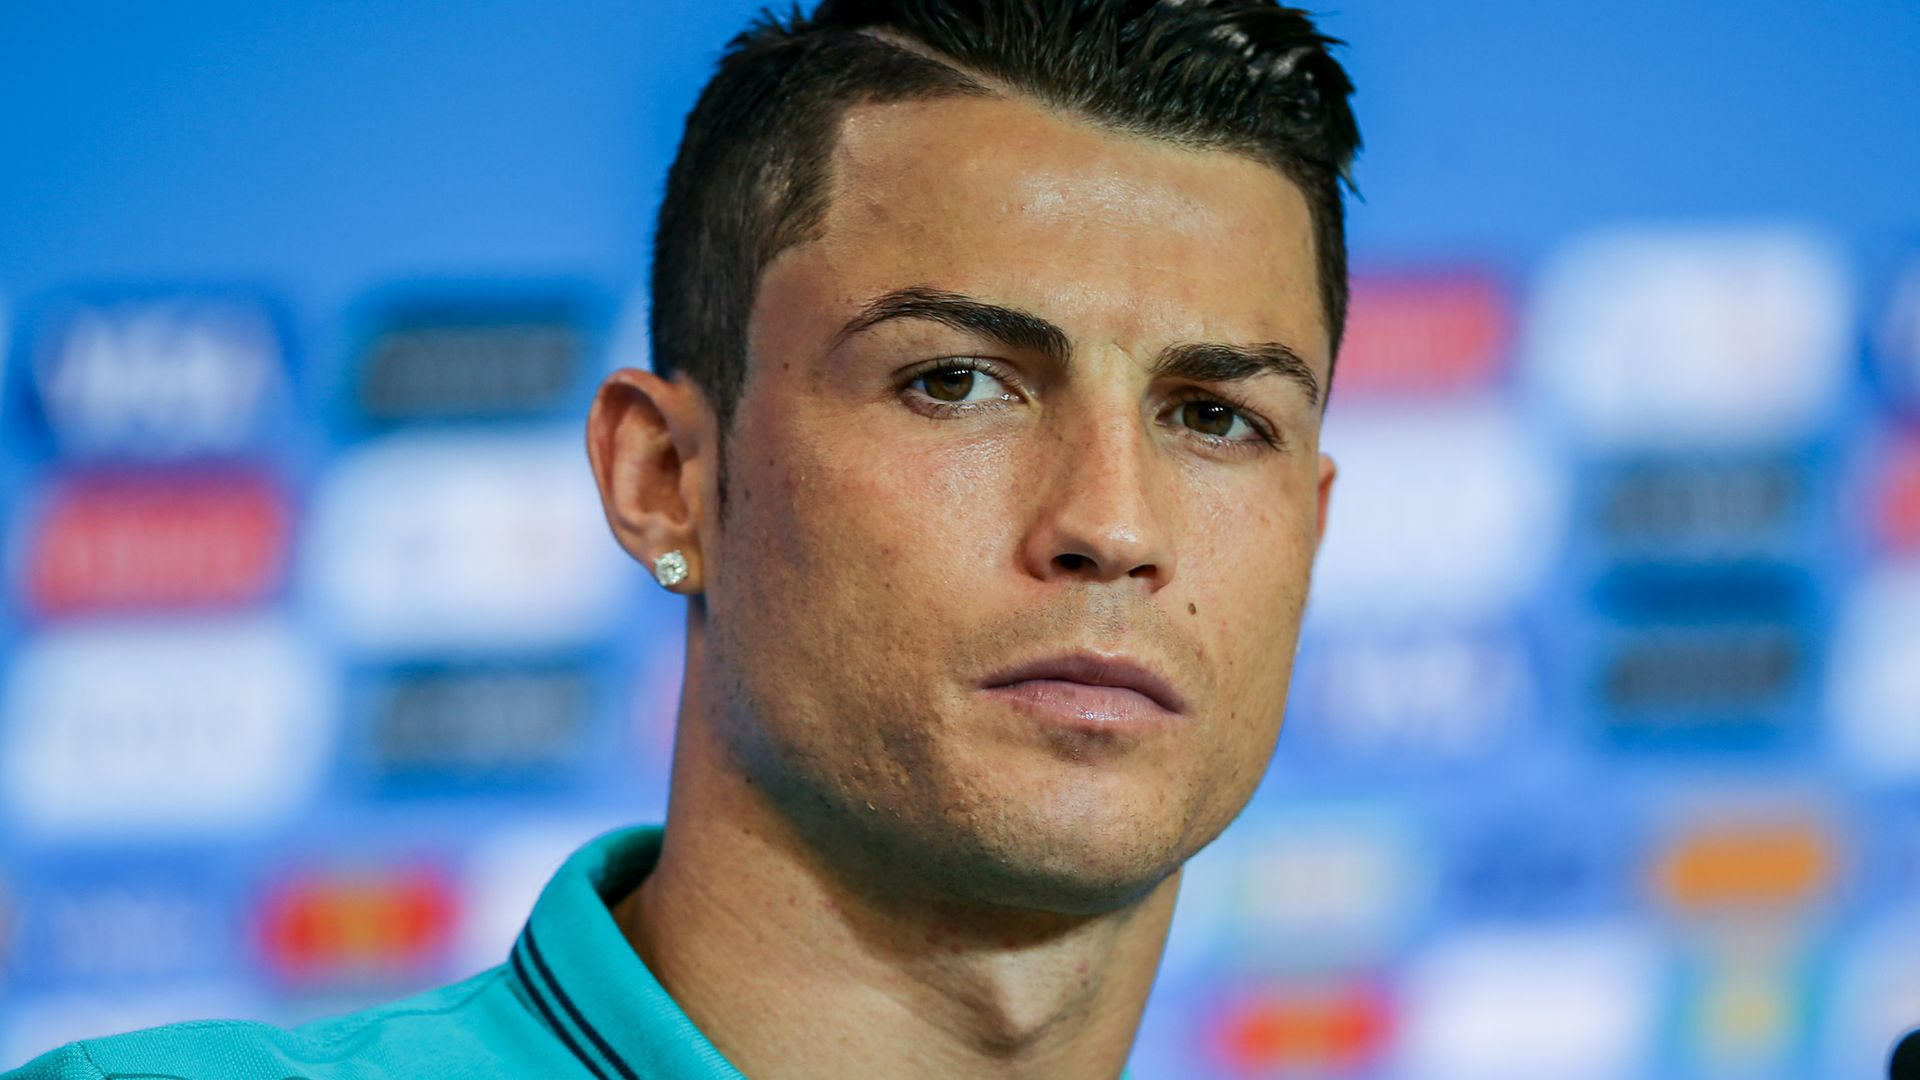 The alone aberration is that for this hairstyle, the admirer has additionally had the bristles. Cristiano Ronaldos Frisur? Lieber nicht nachmachen